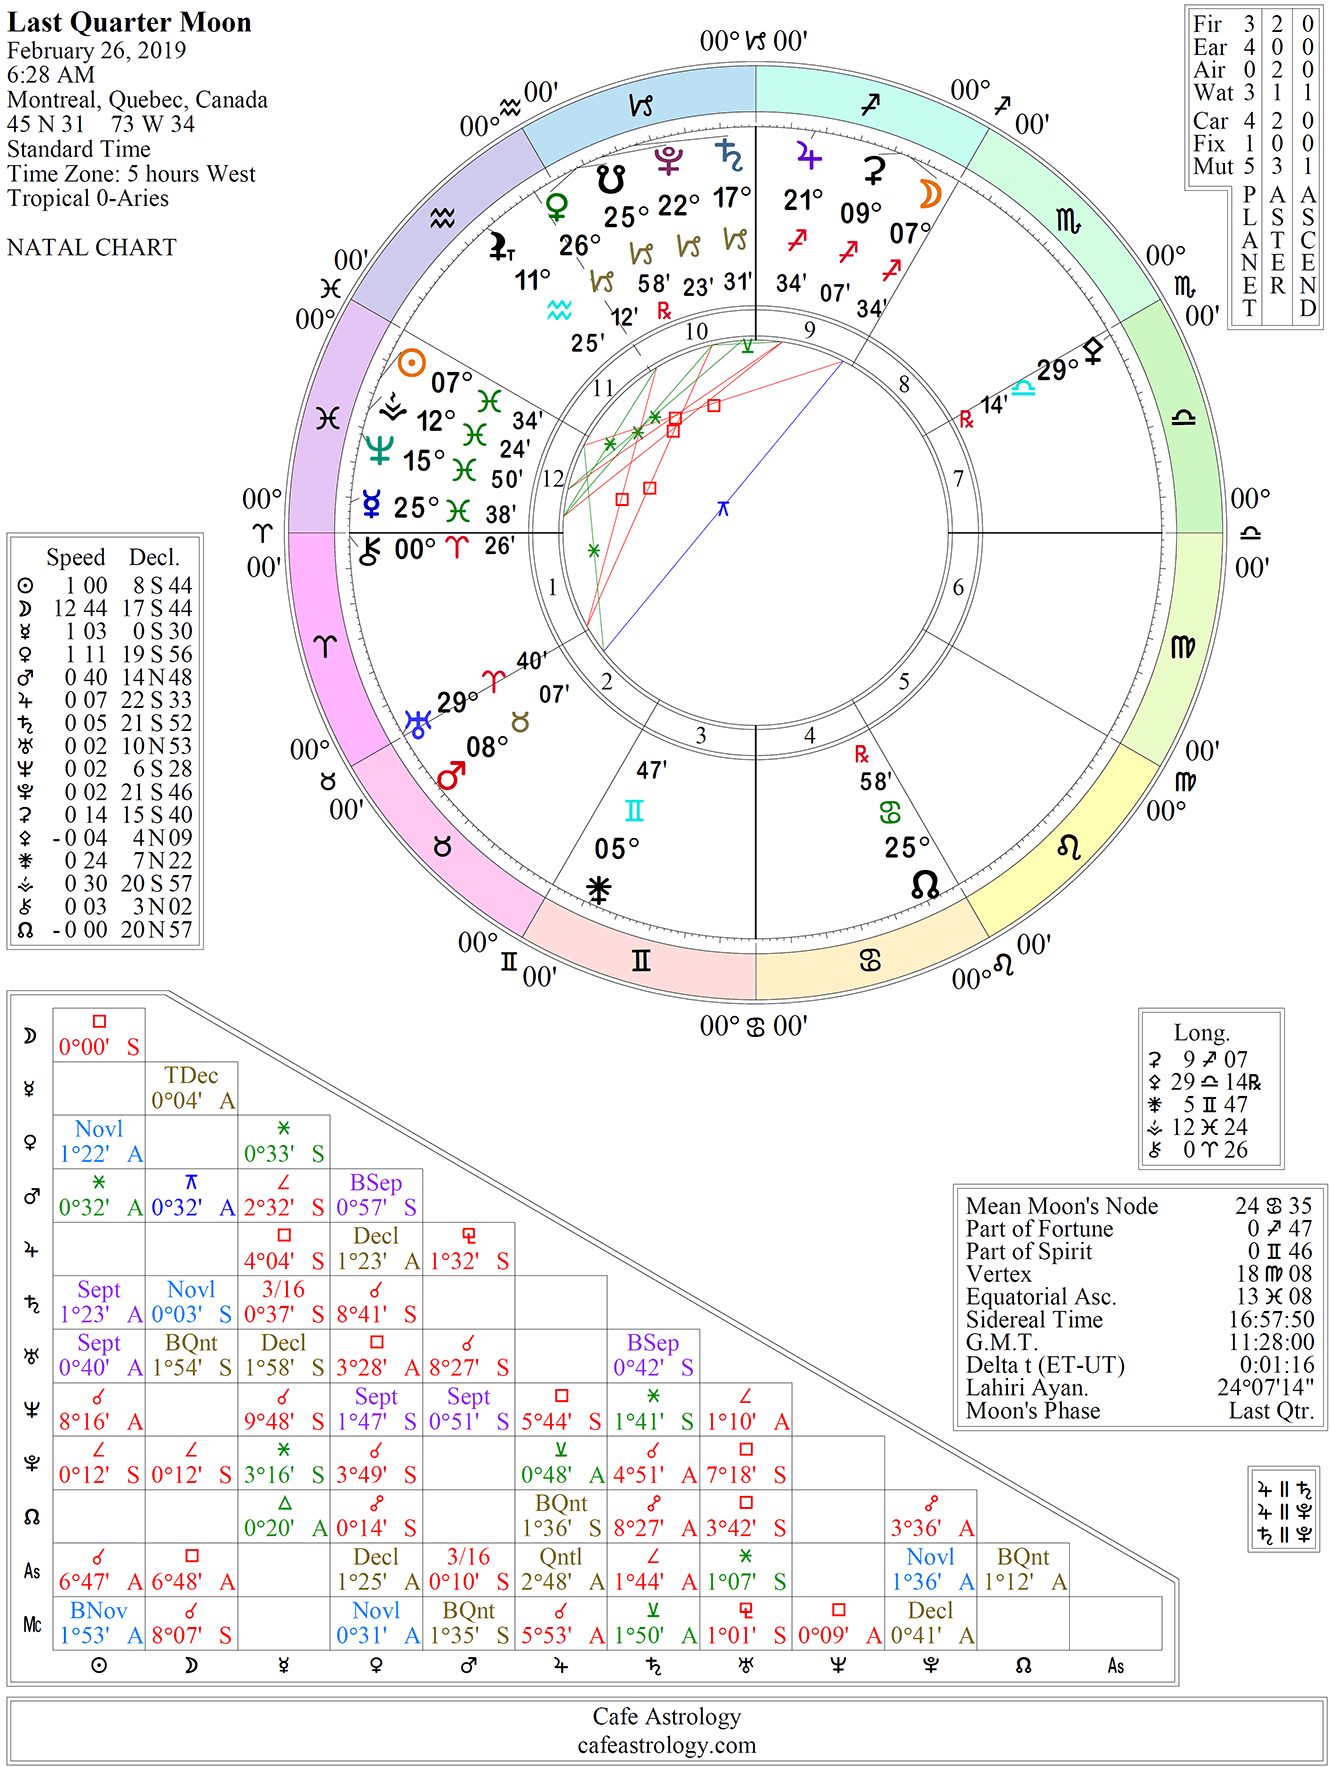 february 24 cafe astrology